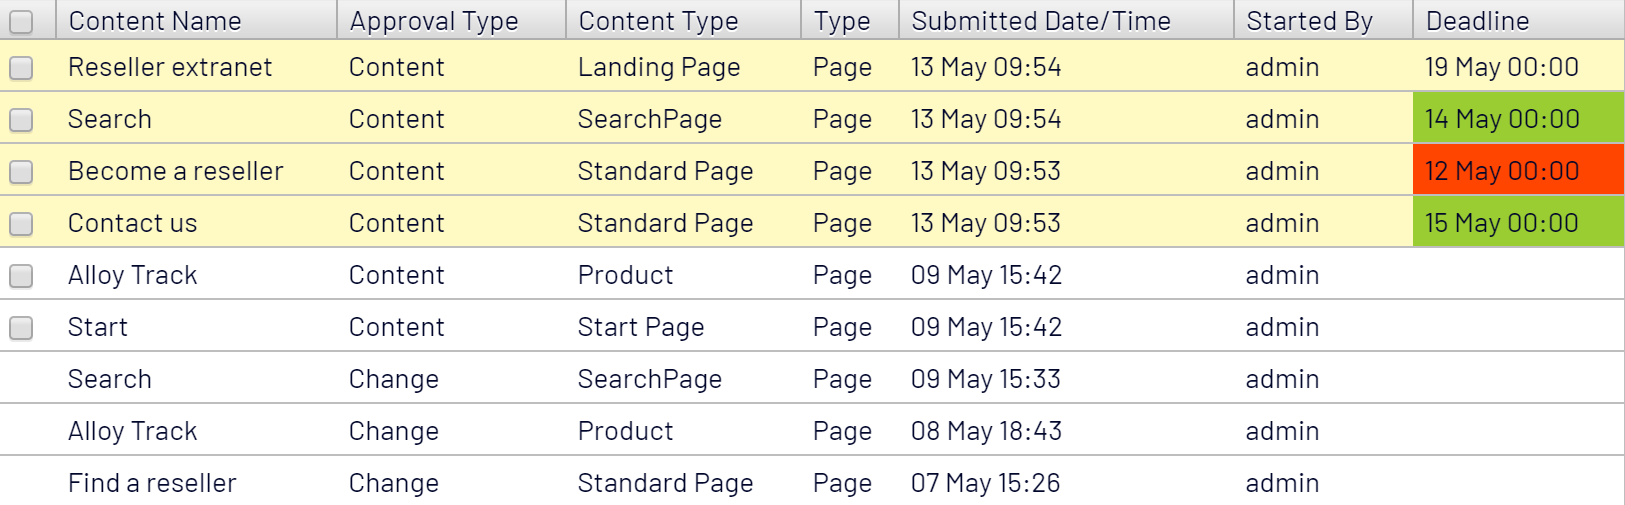 Deadline field for the content approval